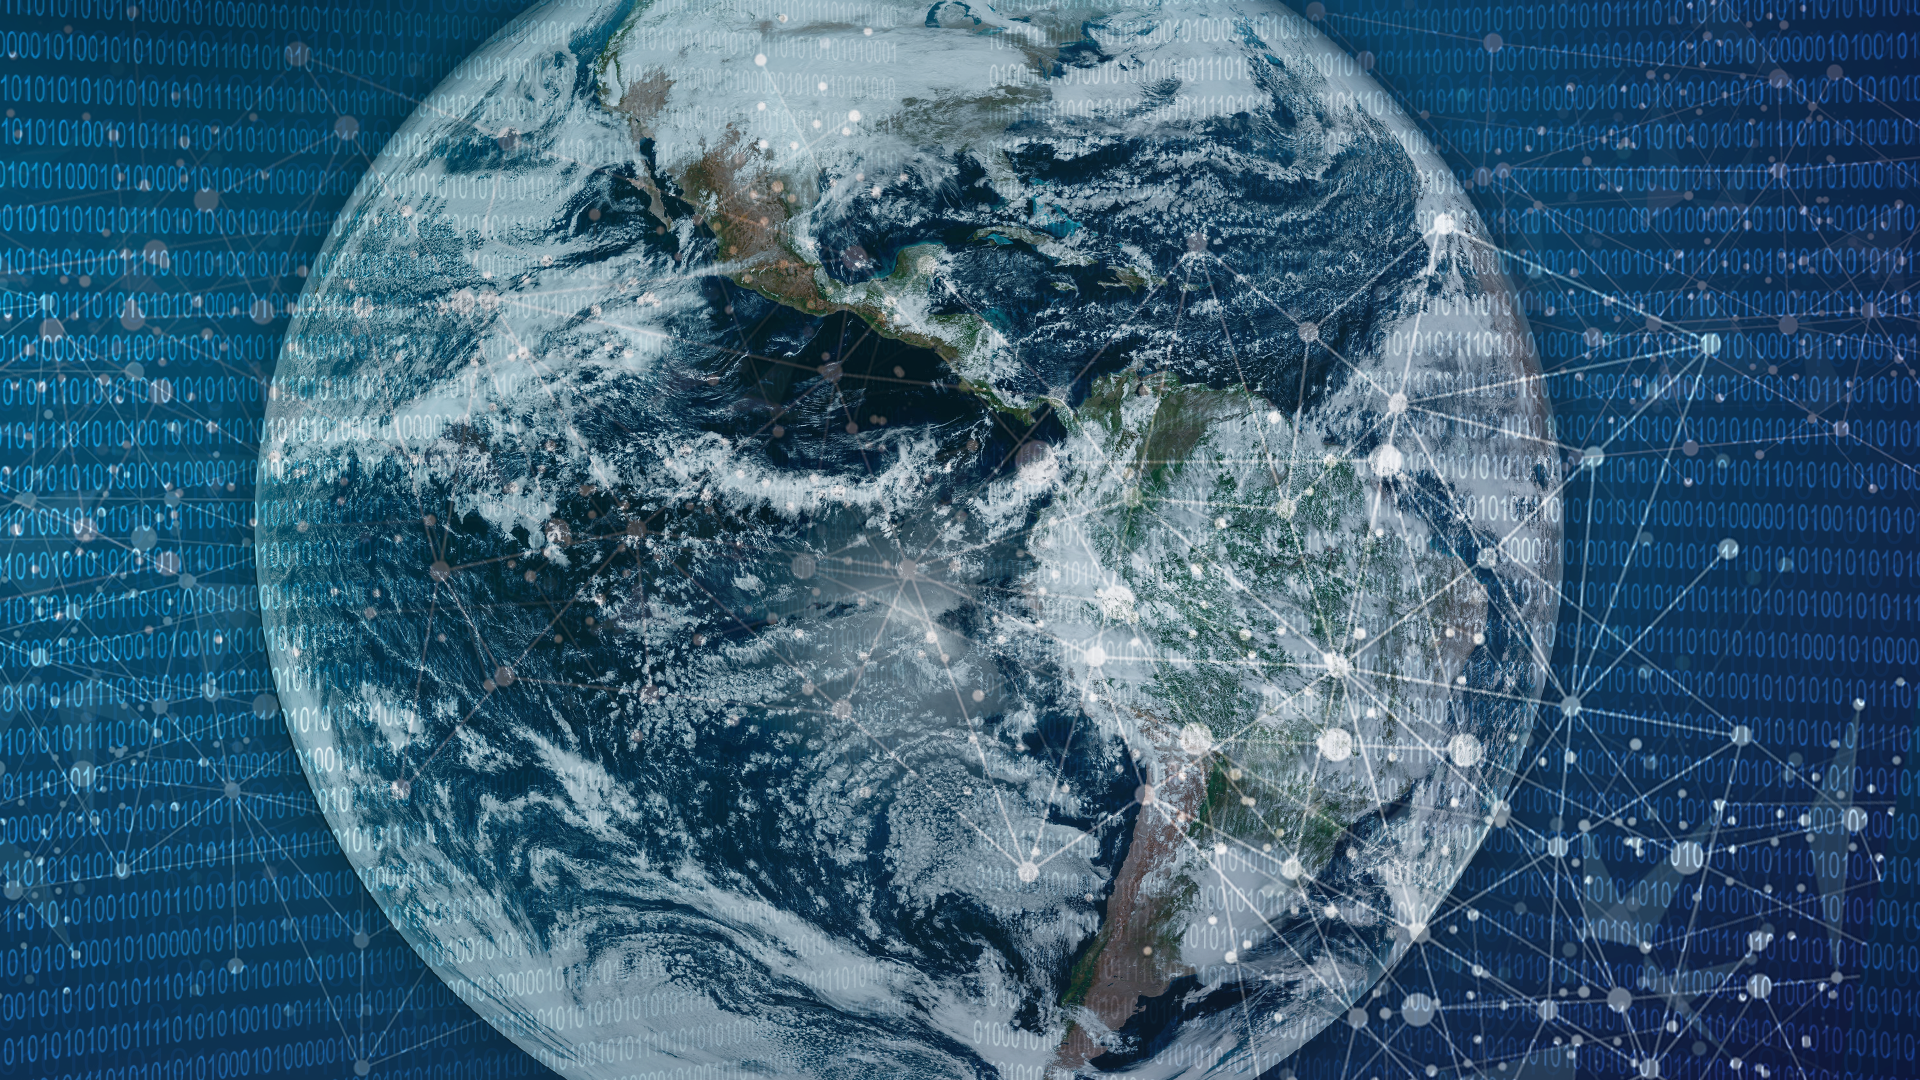 Abstract data waves surrounding Earth